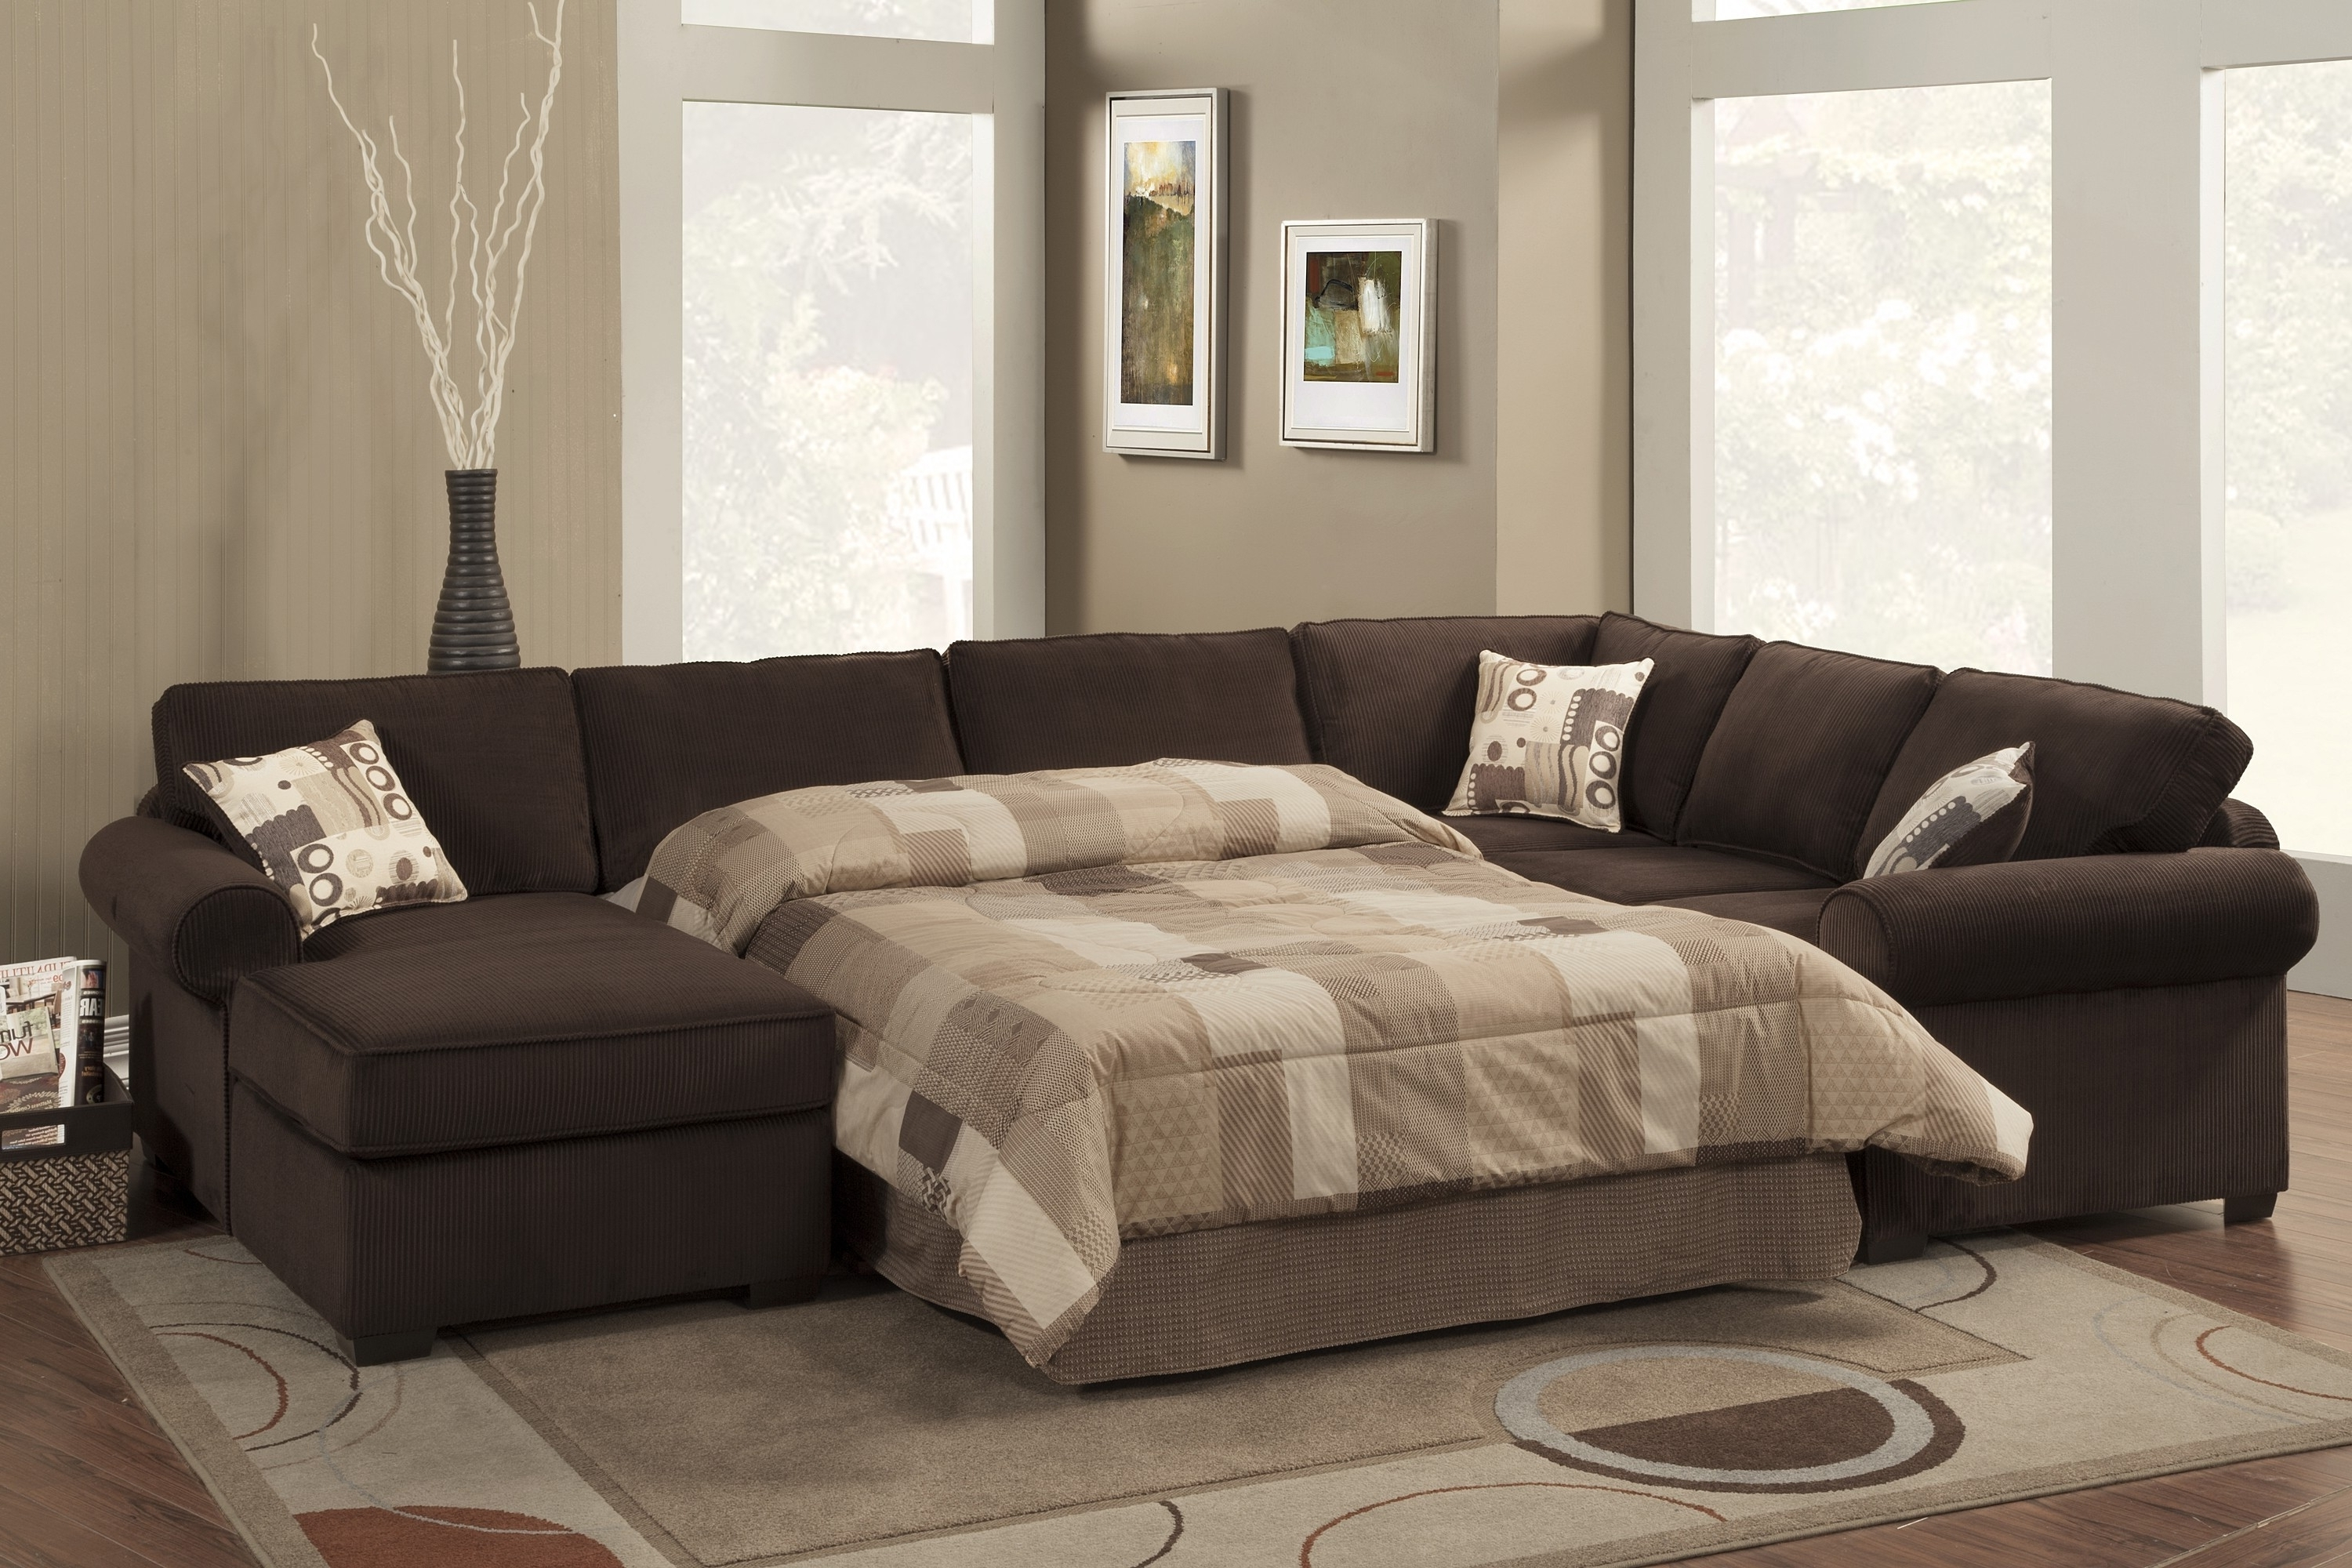 Best And Newest Sectional Sofas With Queen Size Sleeper Regarding Extraordinary Sleeper Sofa Sectional Alluring Home Design (View 2 of 15)